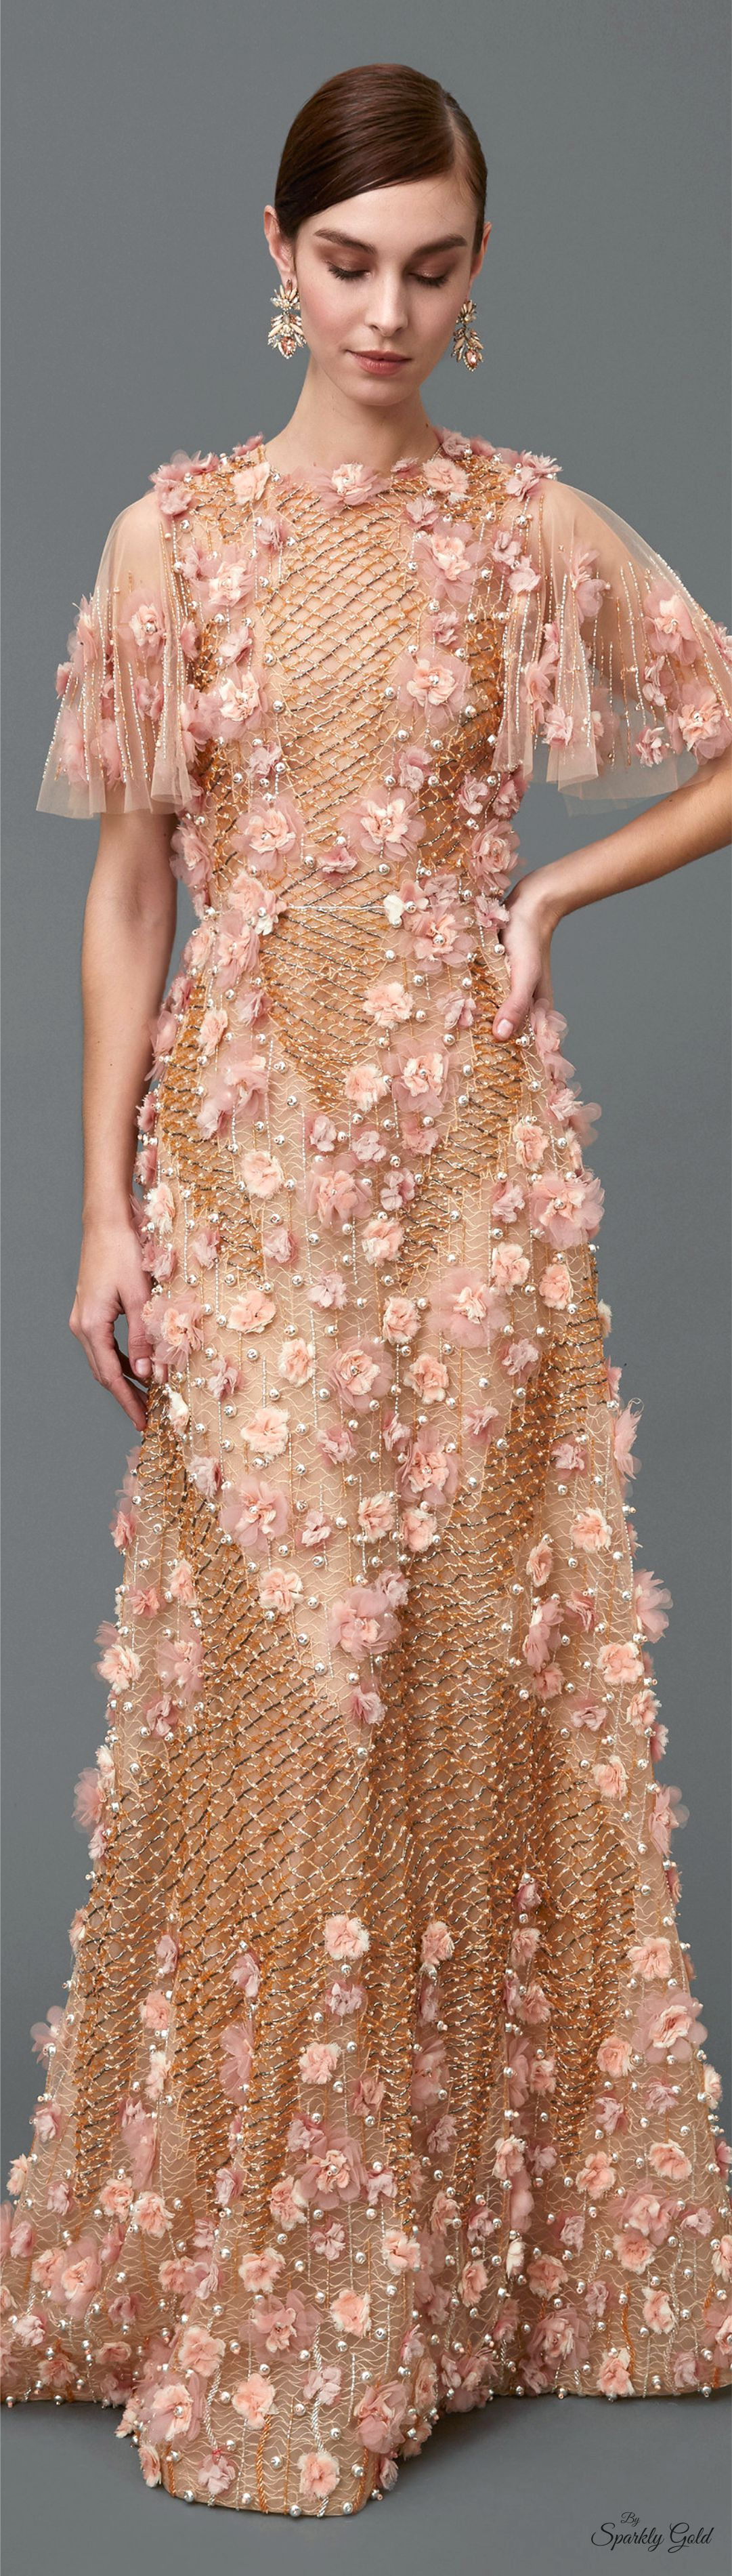 Marchesa Pre F-16: sheer floral gown. women fashion outfit clothing style apparel @roressclothes closet ideas